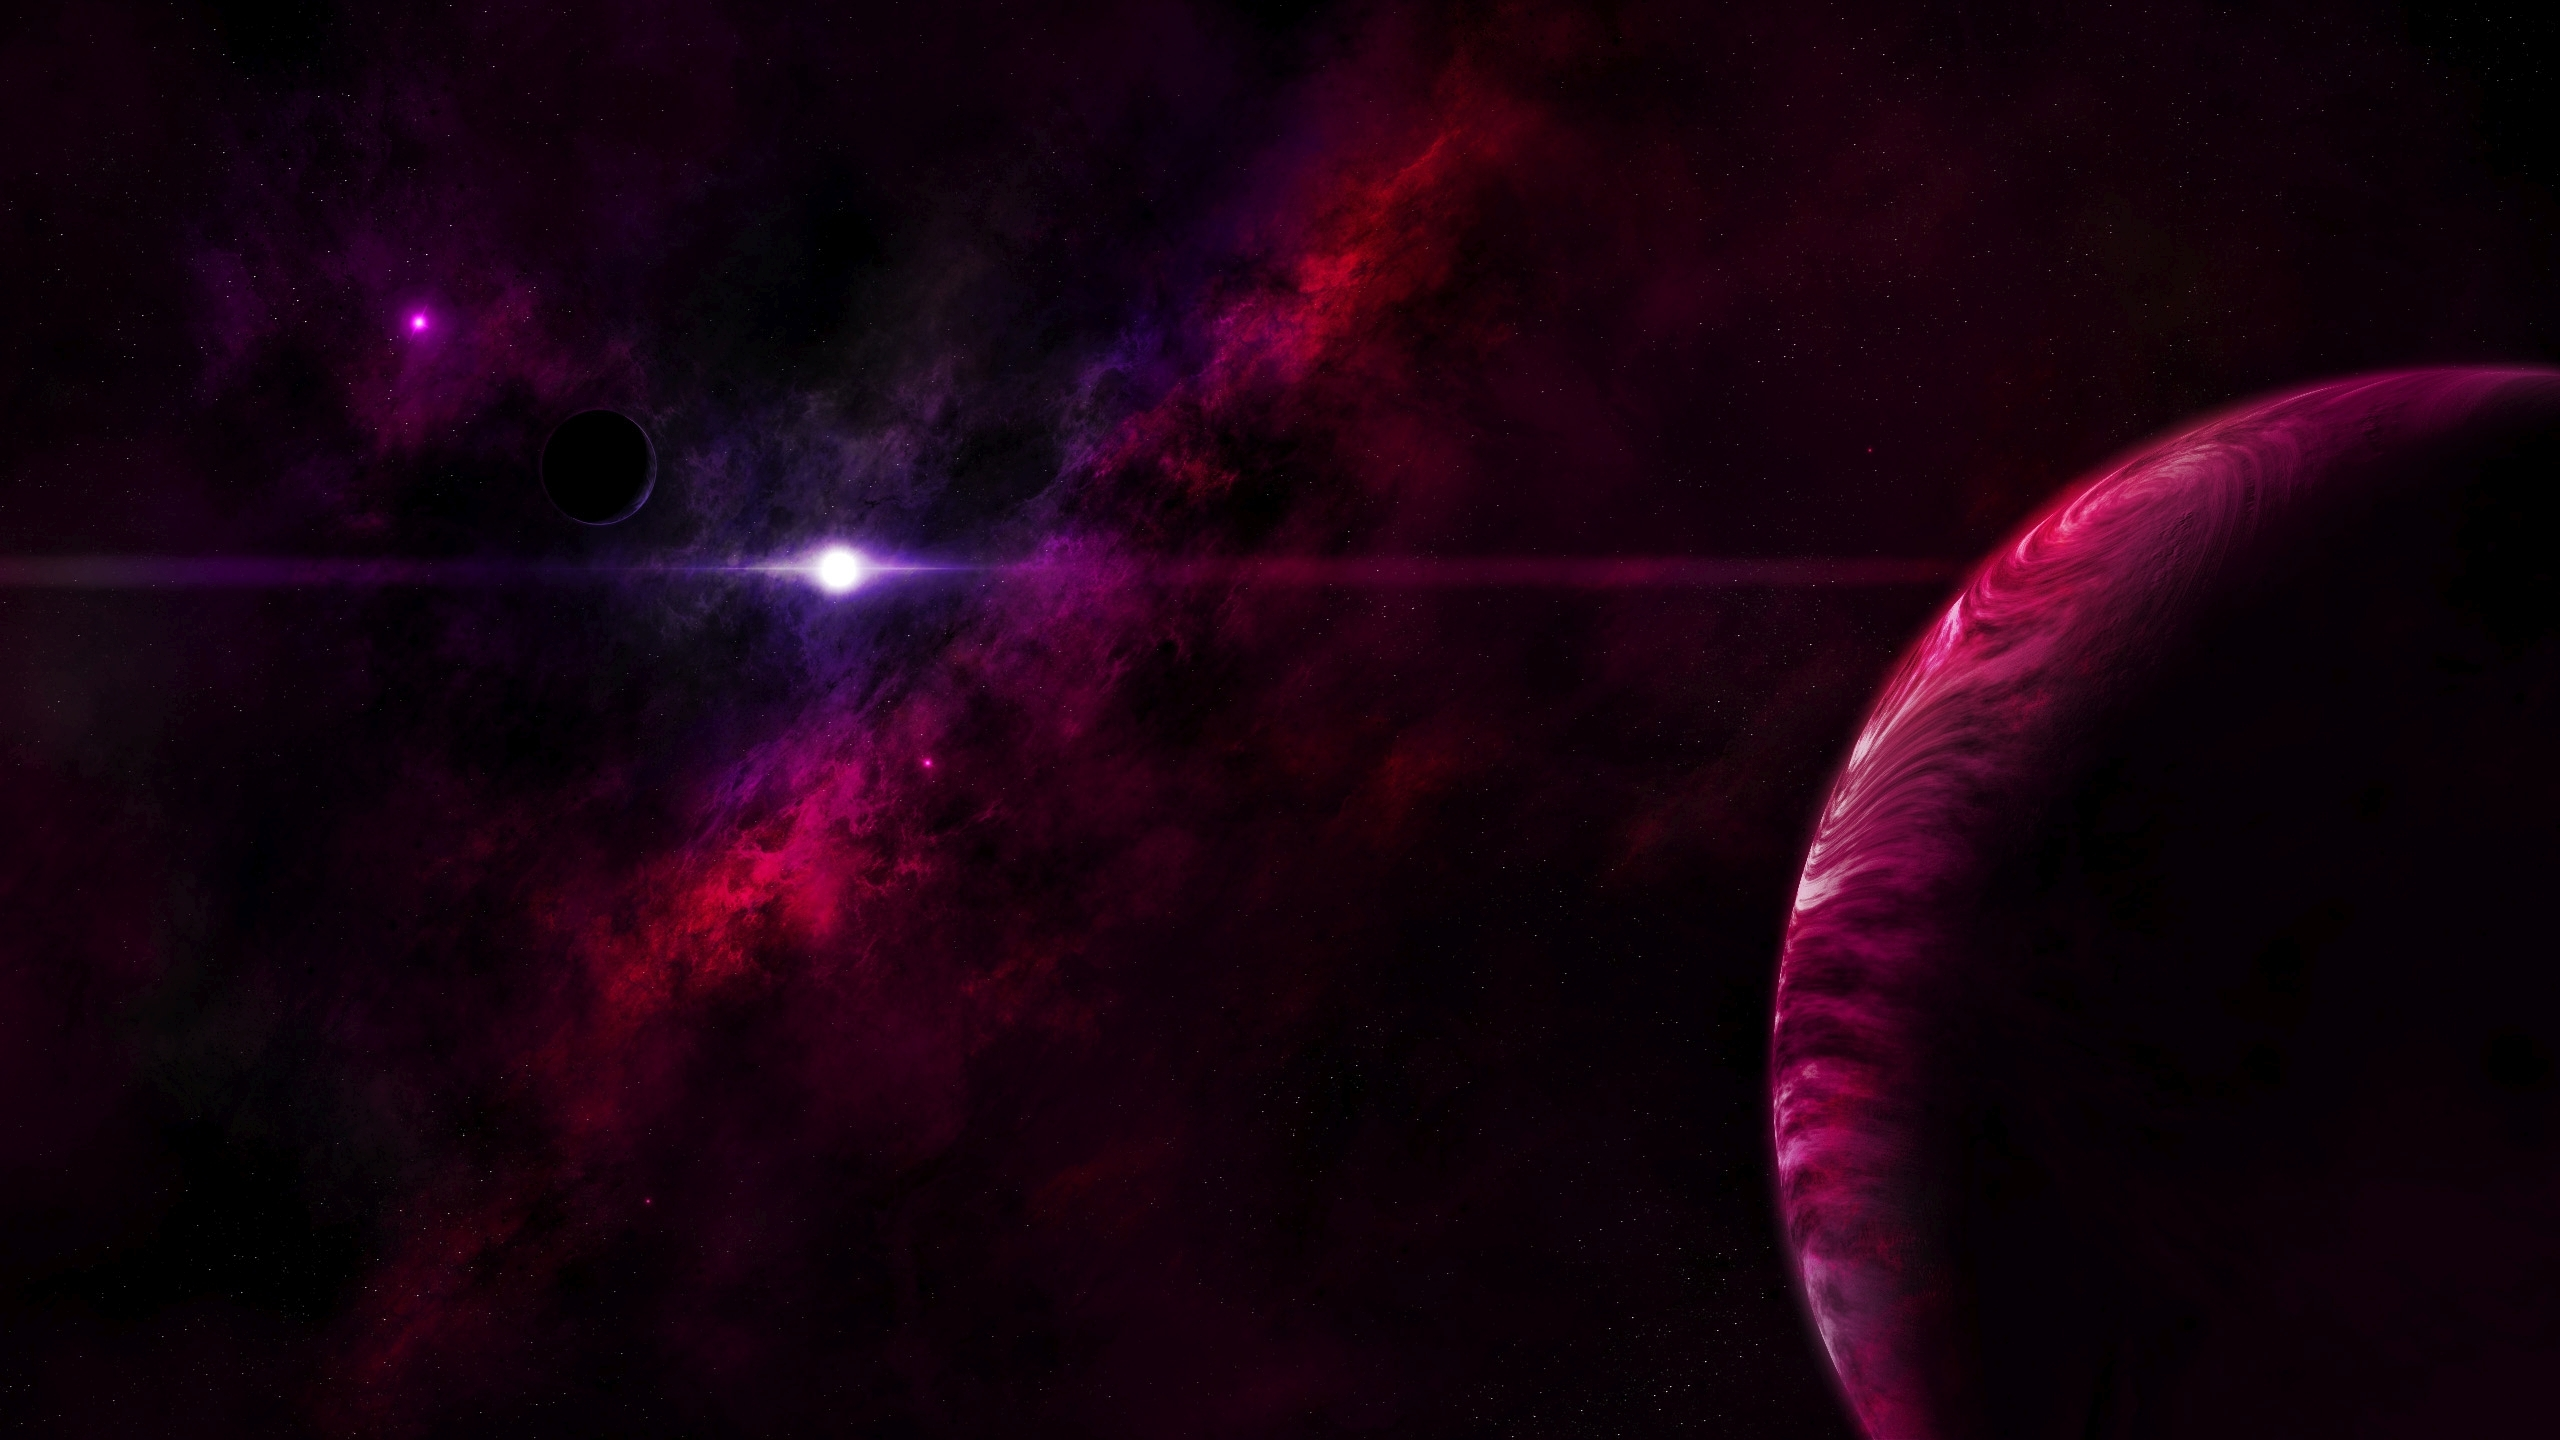 Red planets and a shiny star